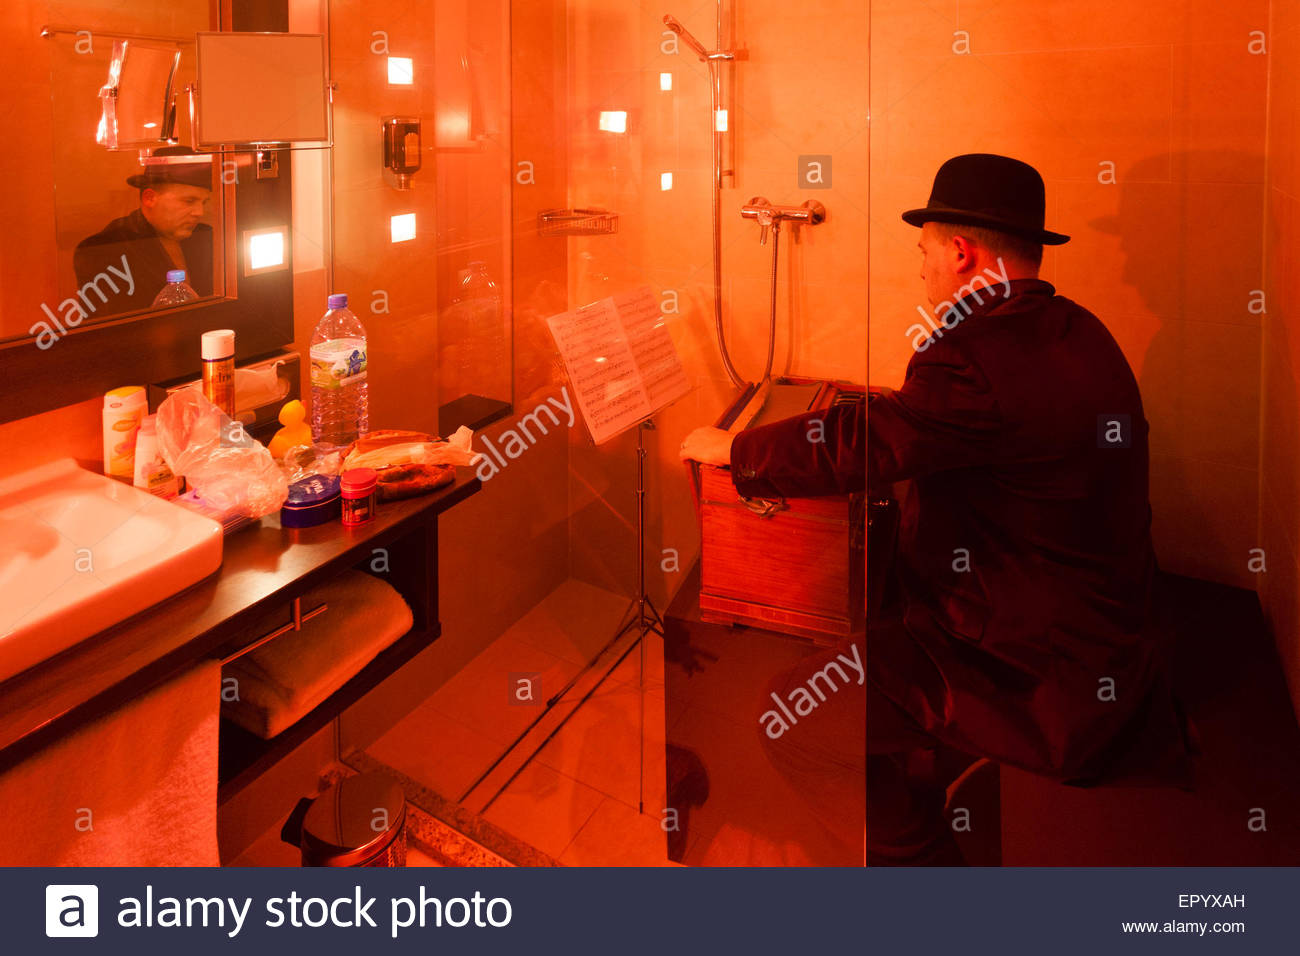 theatre performance in a hotel room shower - Stock Image